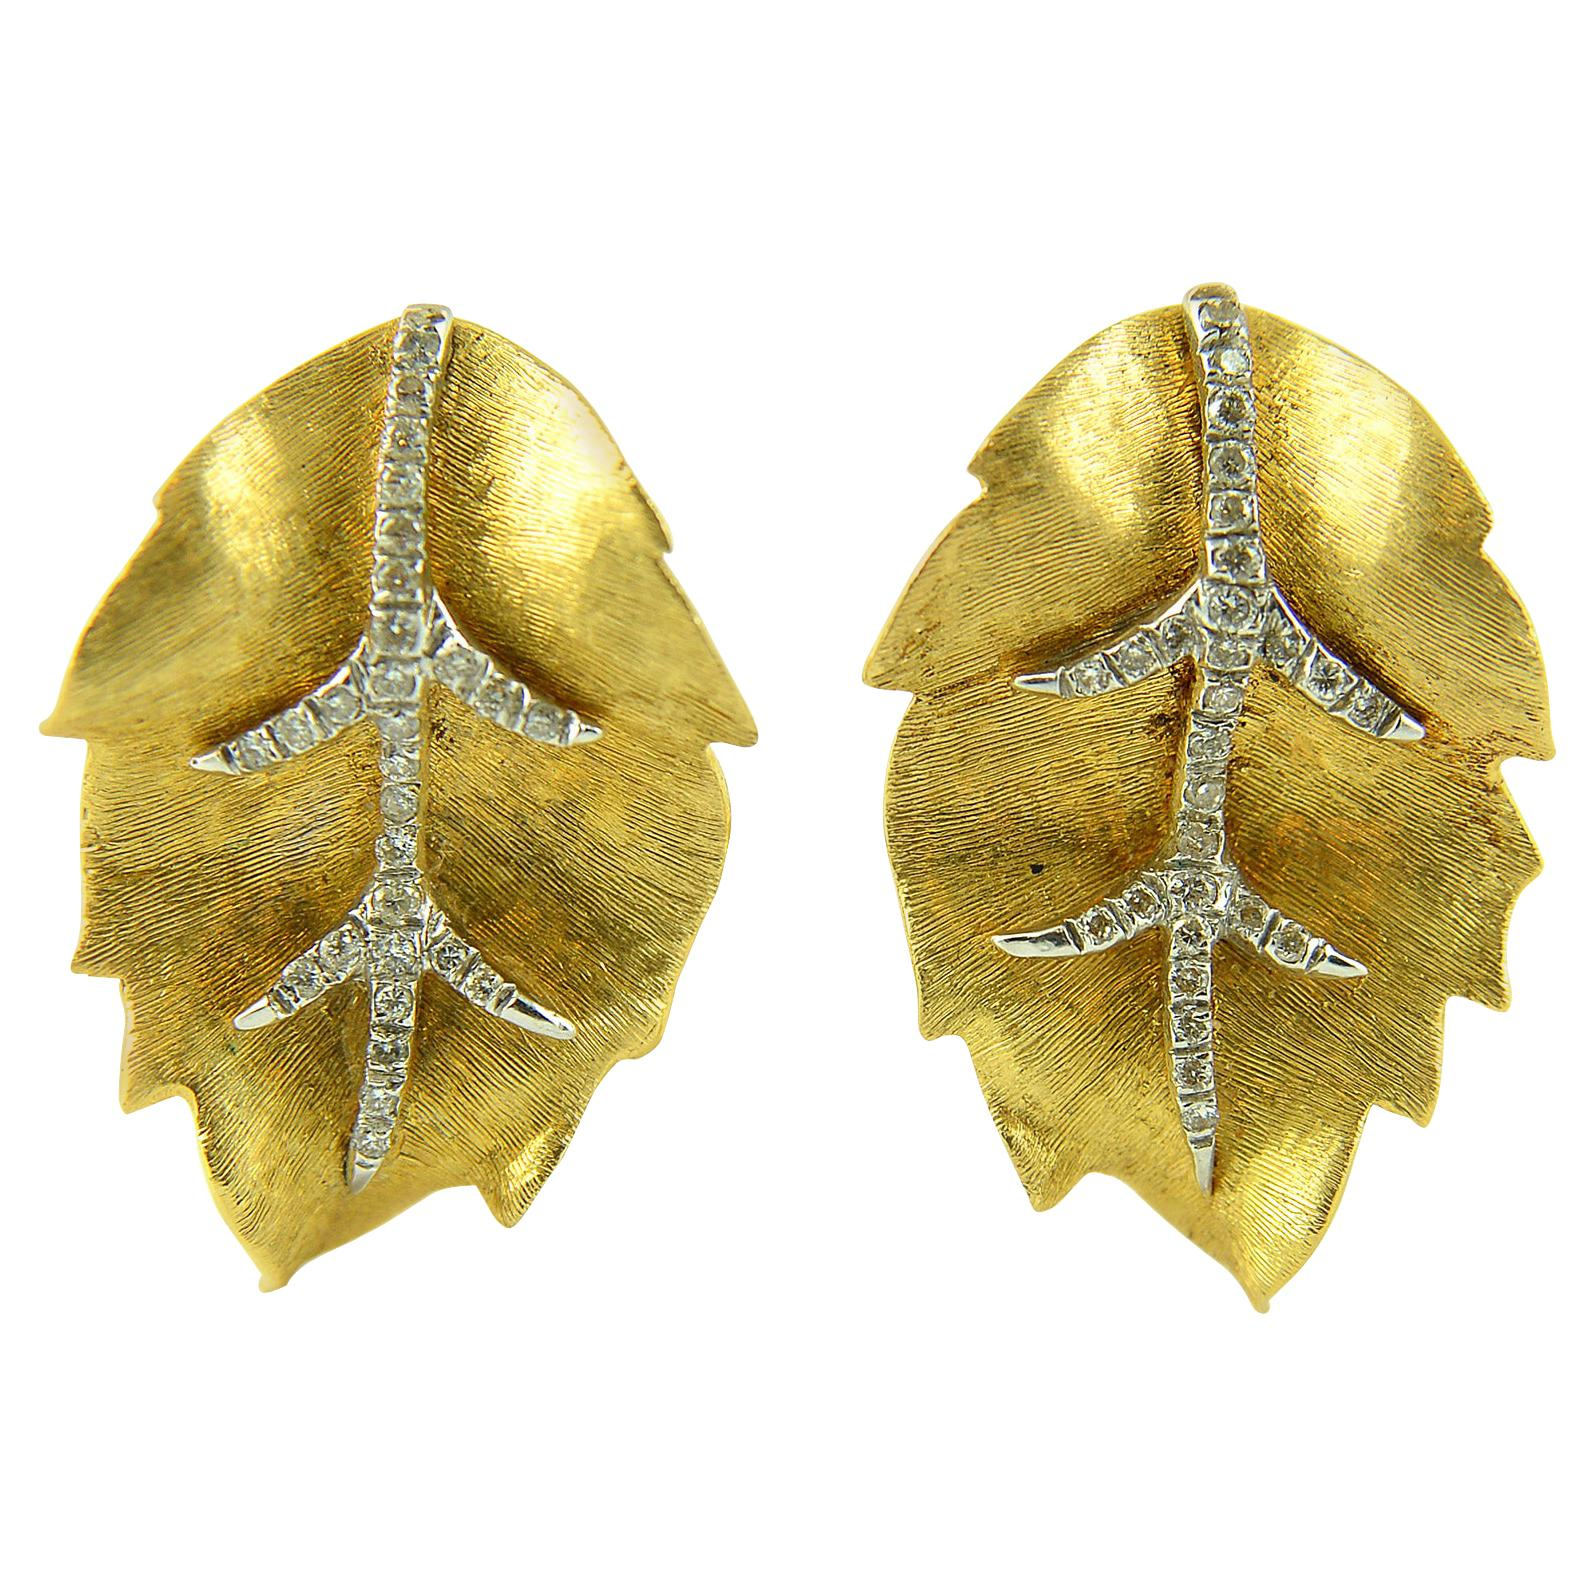 Diamond and 18k Yellow Gold Leaf Earrings